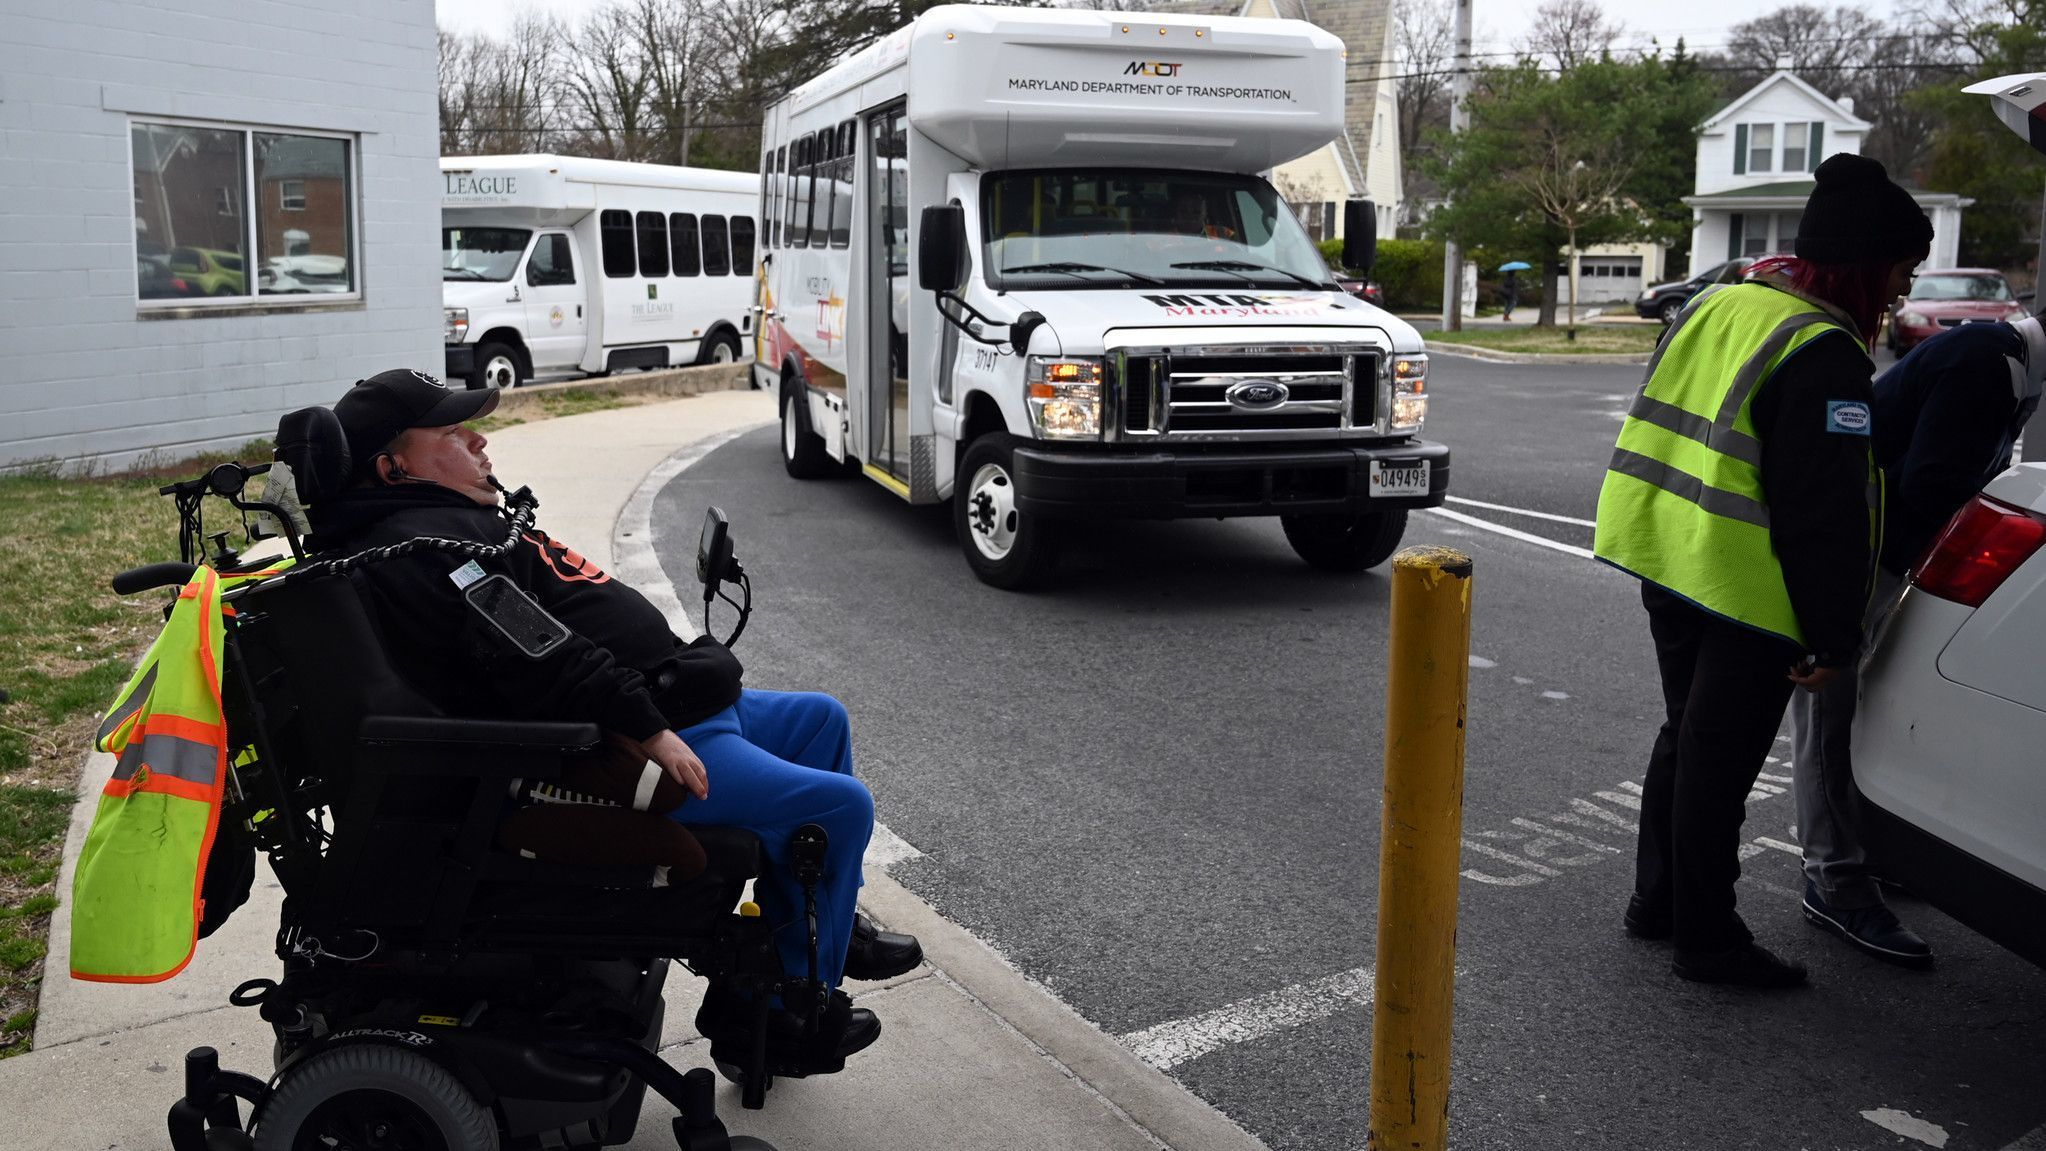 Disabilities rights advocates ask Maryland Gov. Larry Hogan to intervene on MTA MobilityLink troubles